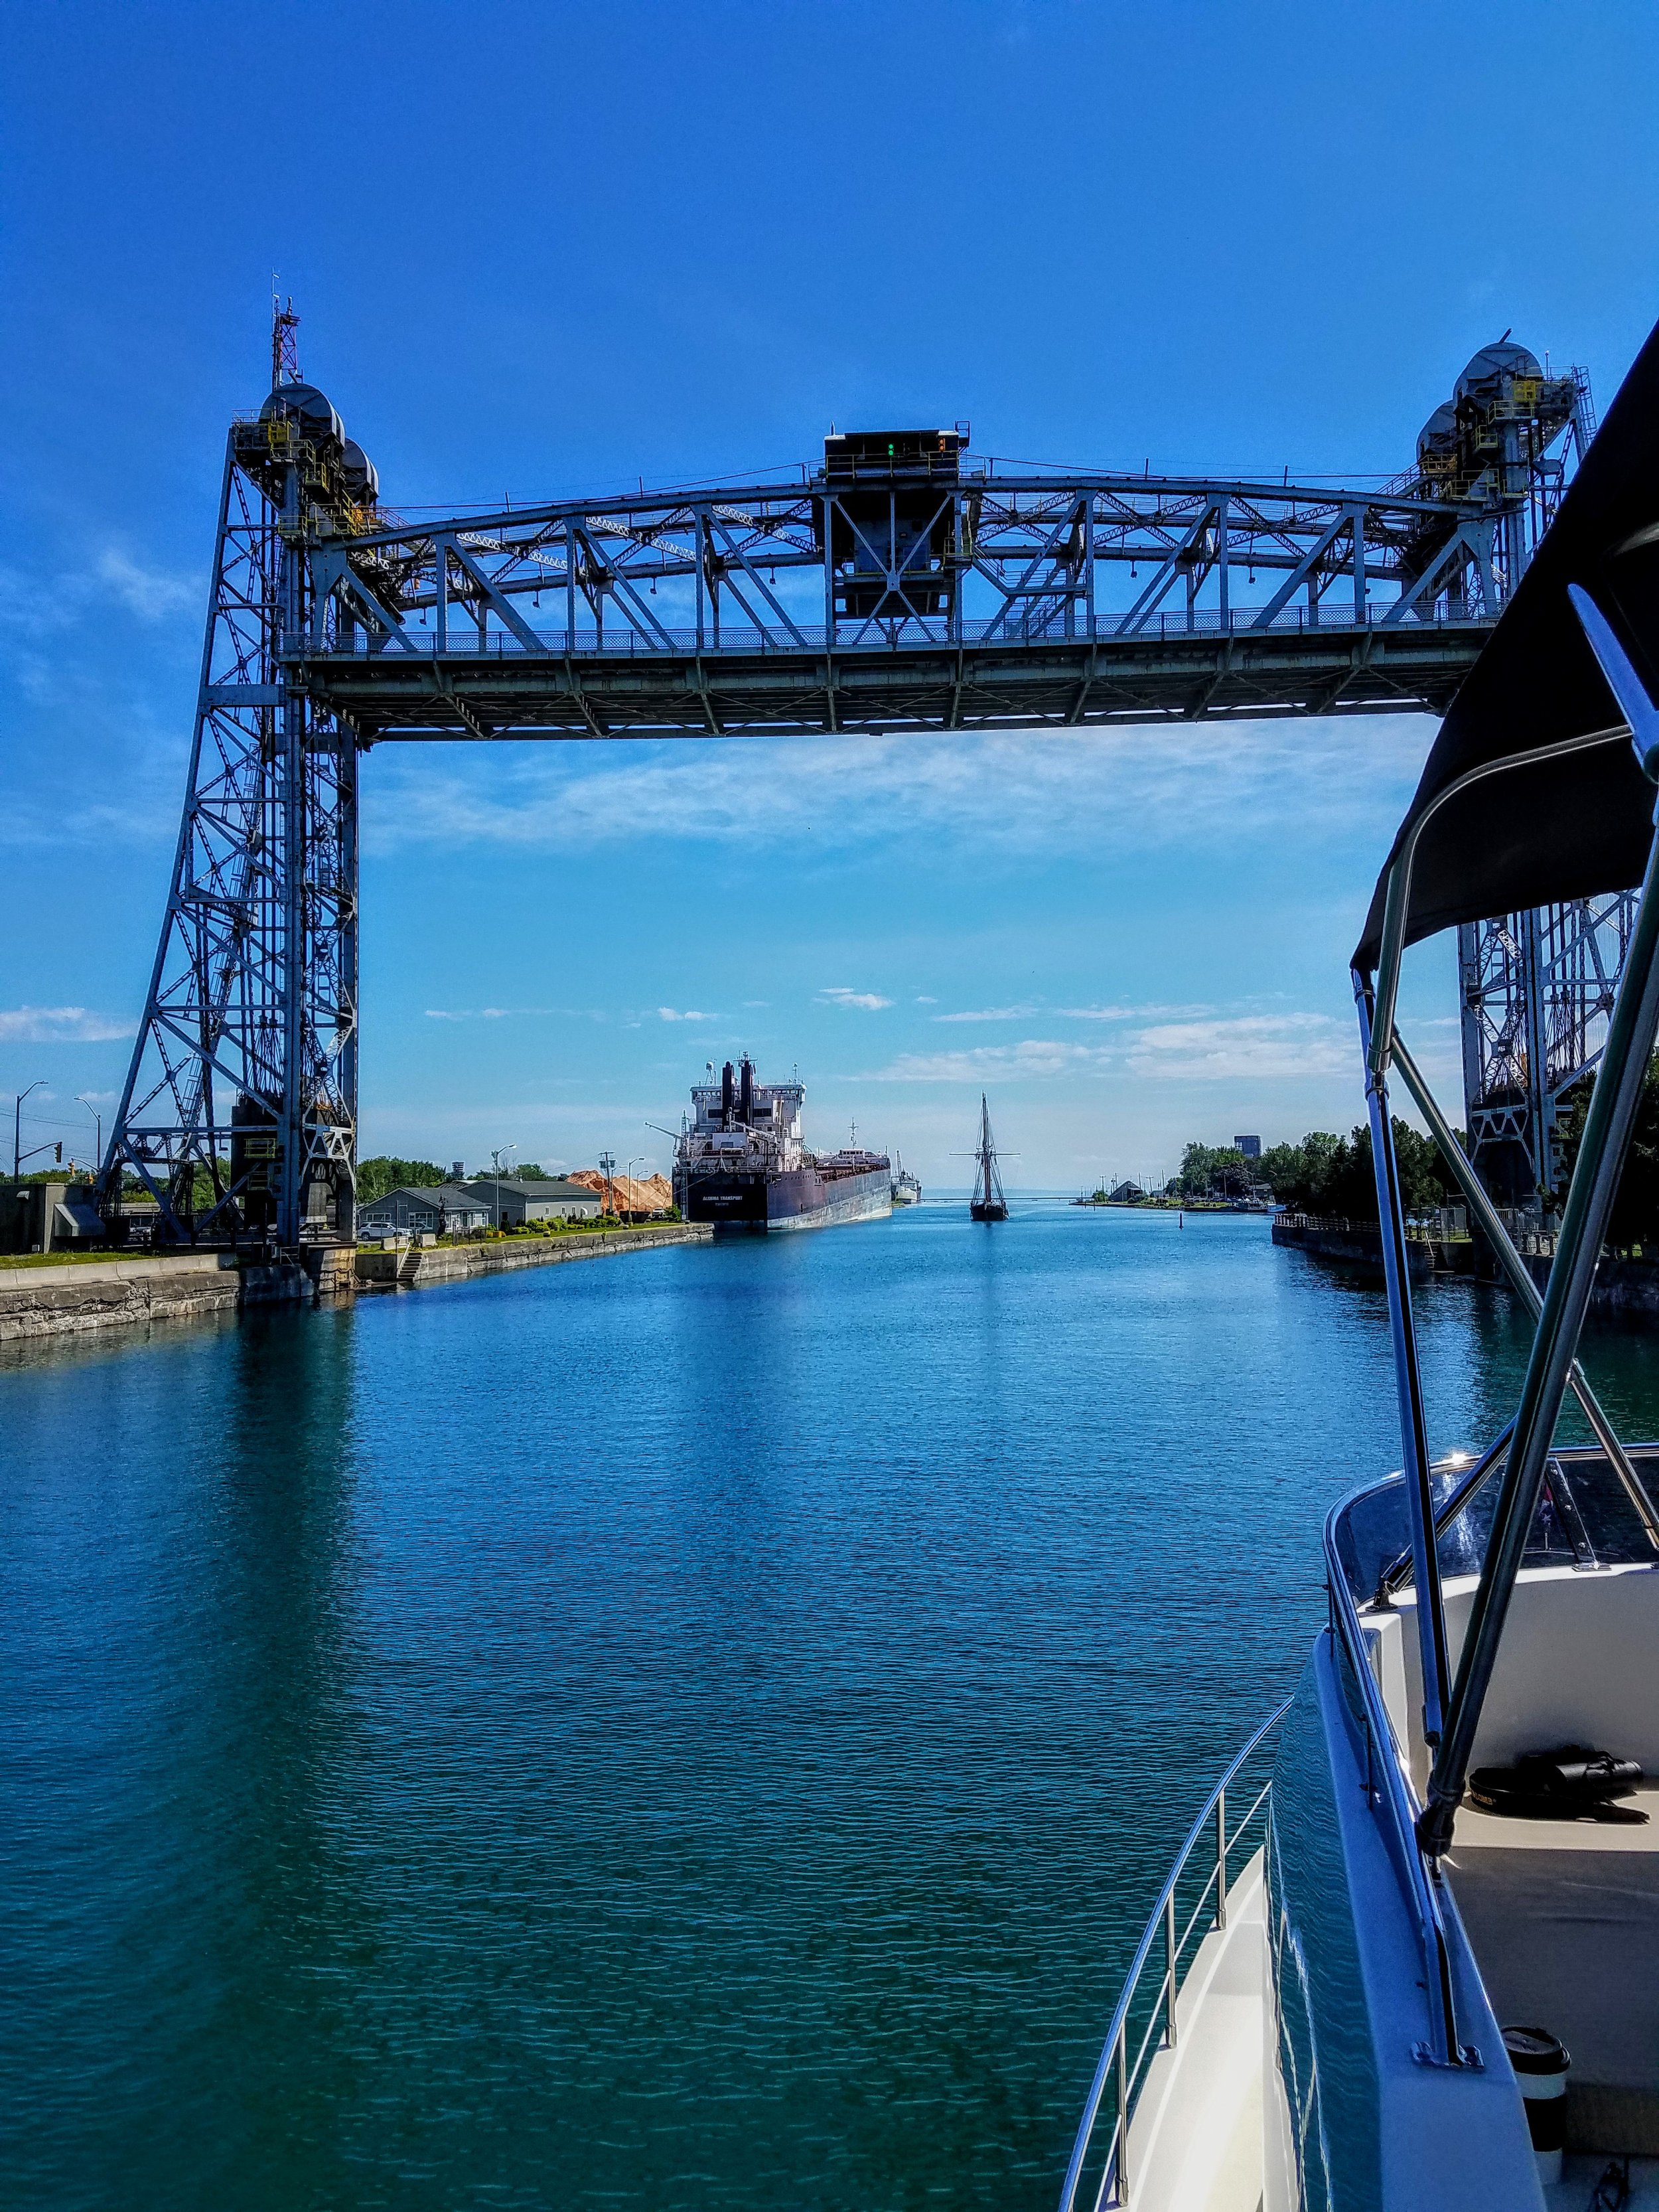 The end of the Welland Canal…the last elevator bridge and the marina is in site…and so is my beer.